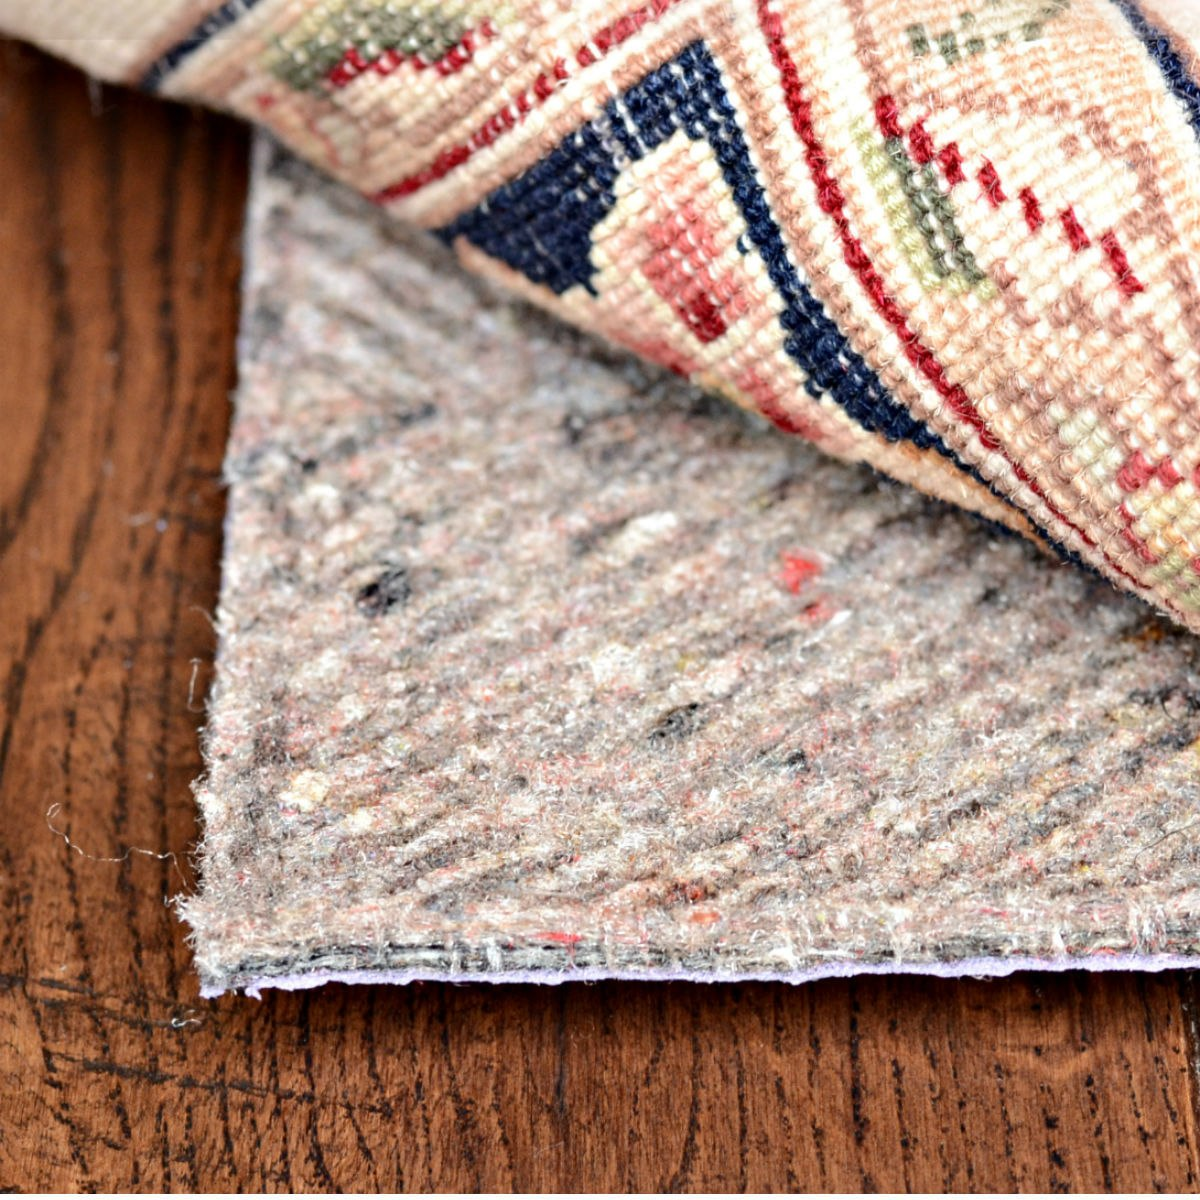 rug pad for carpet durahold non slip rug pad for hard floors - runners HSPIJTF